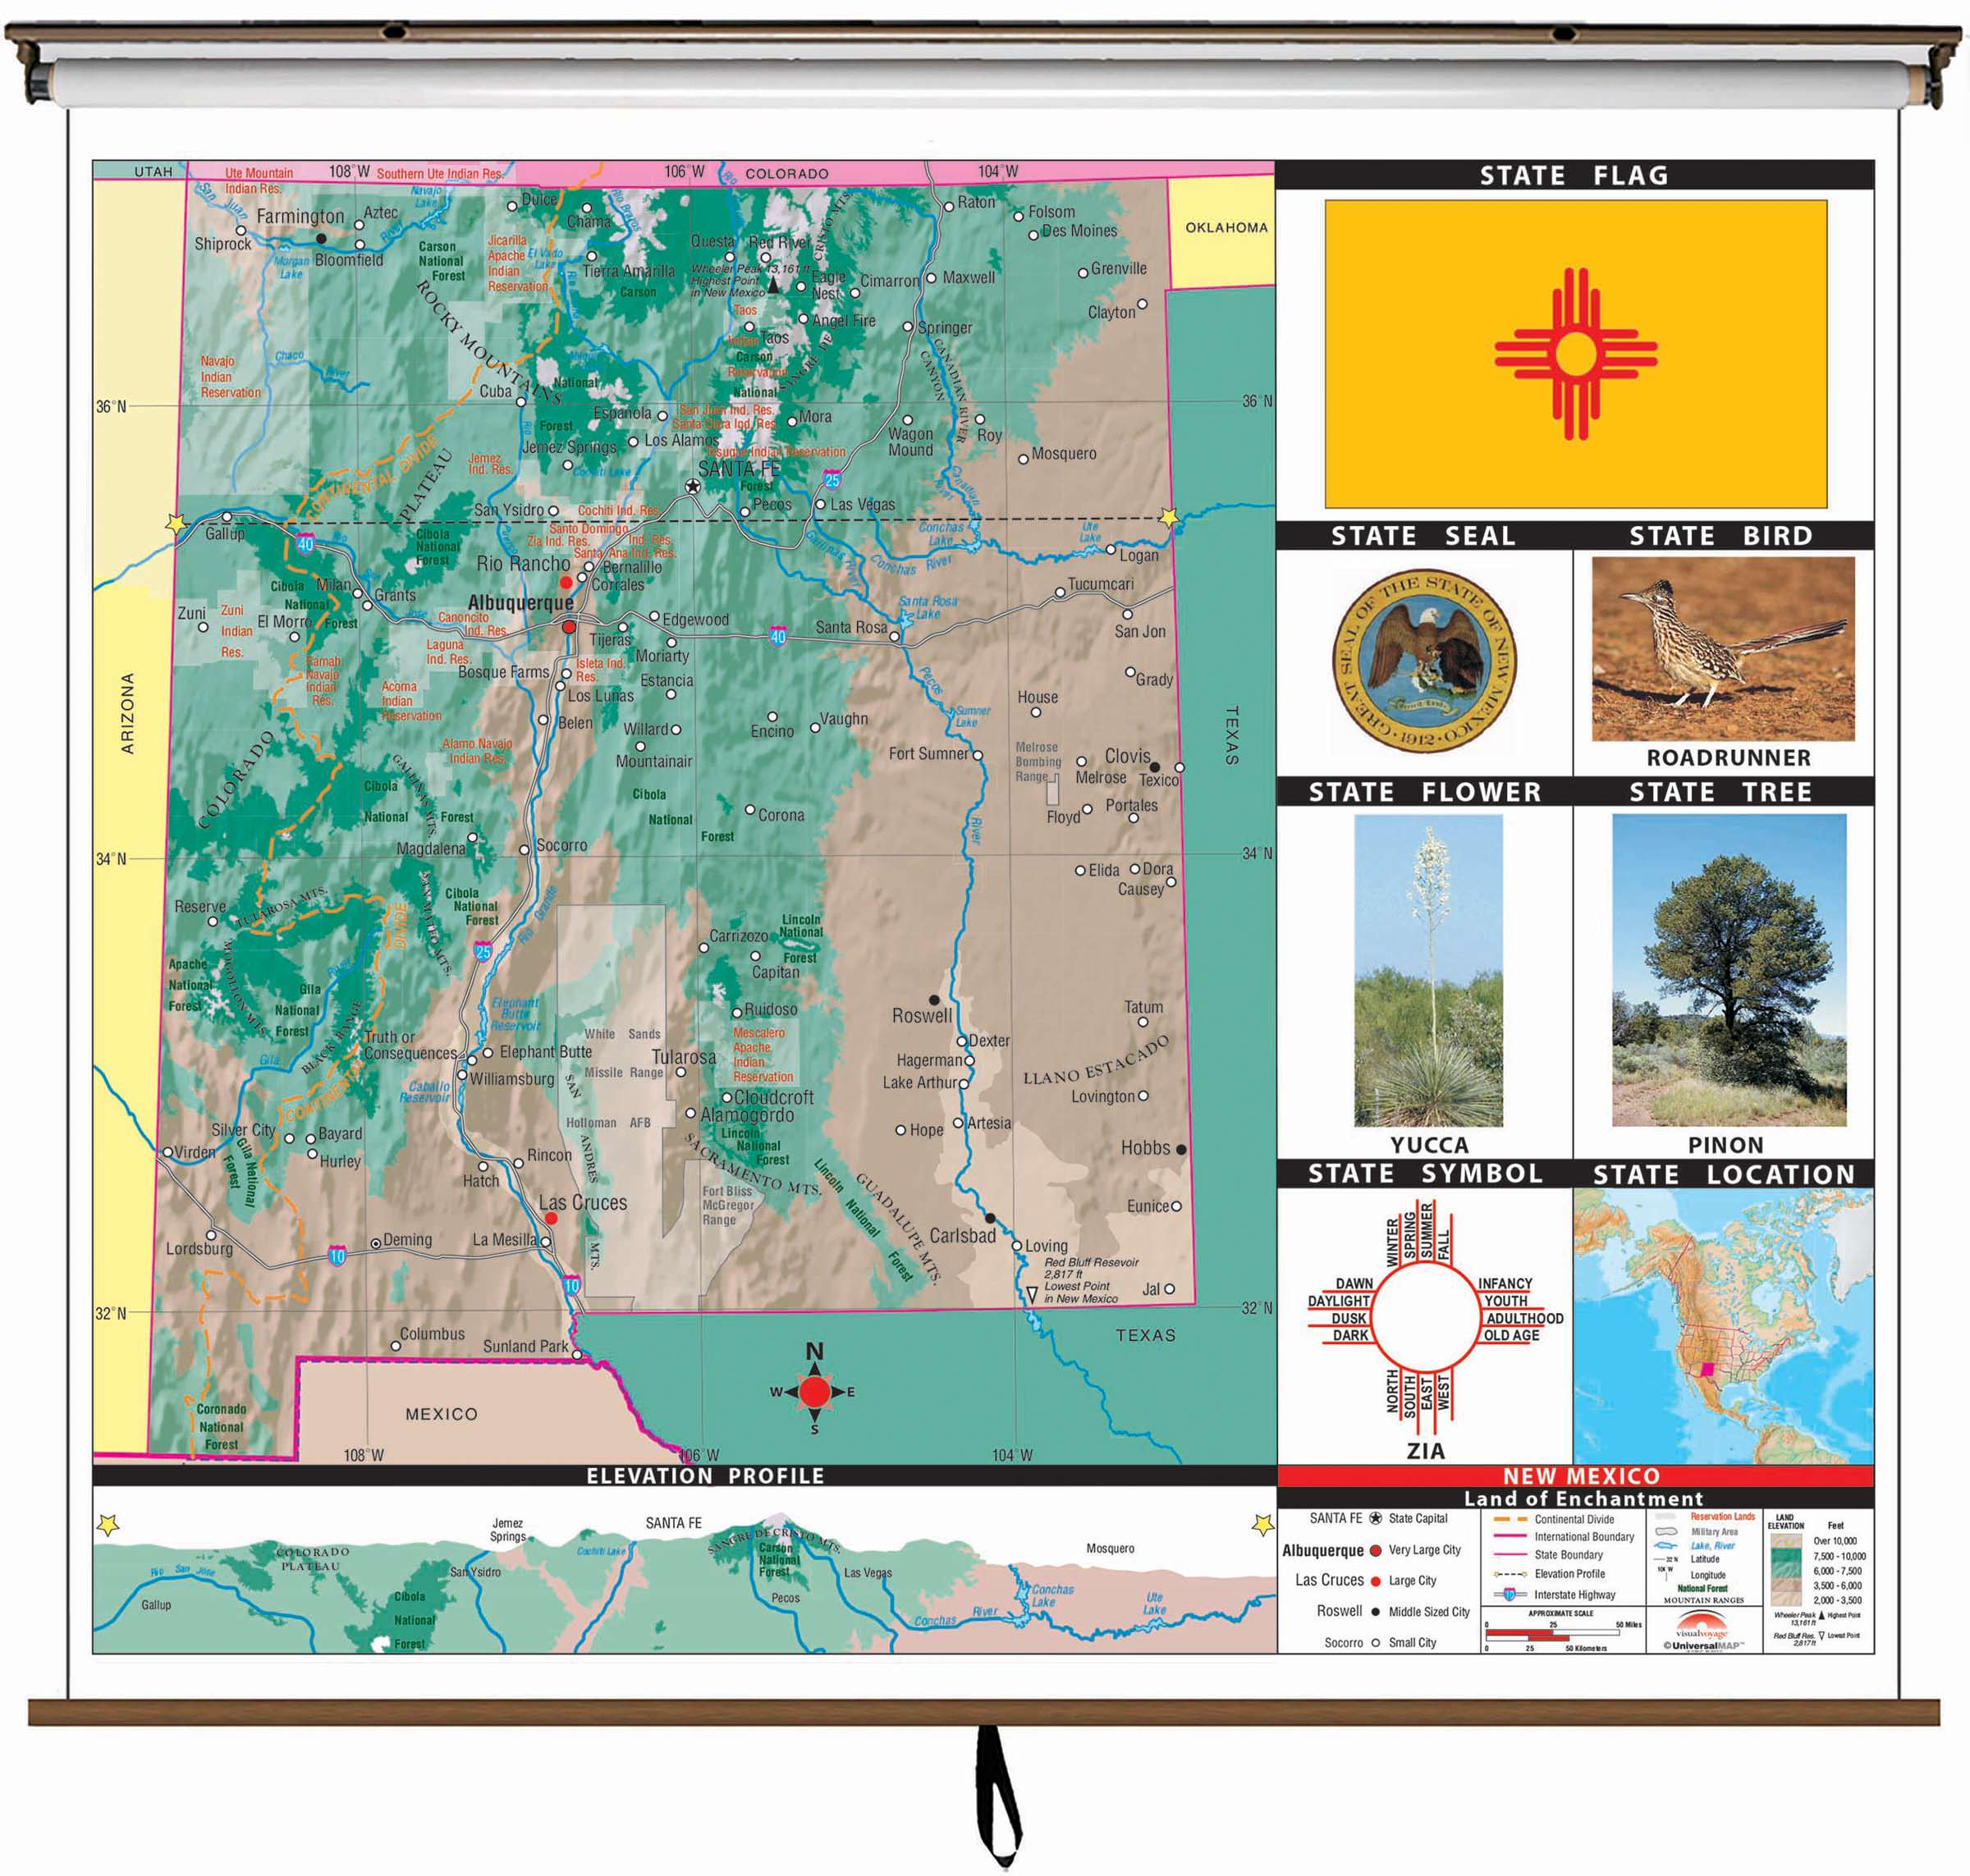 New Mexico State Primary Thematic Wall Map on Roller w/ Backboard ...